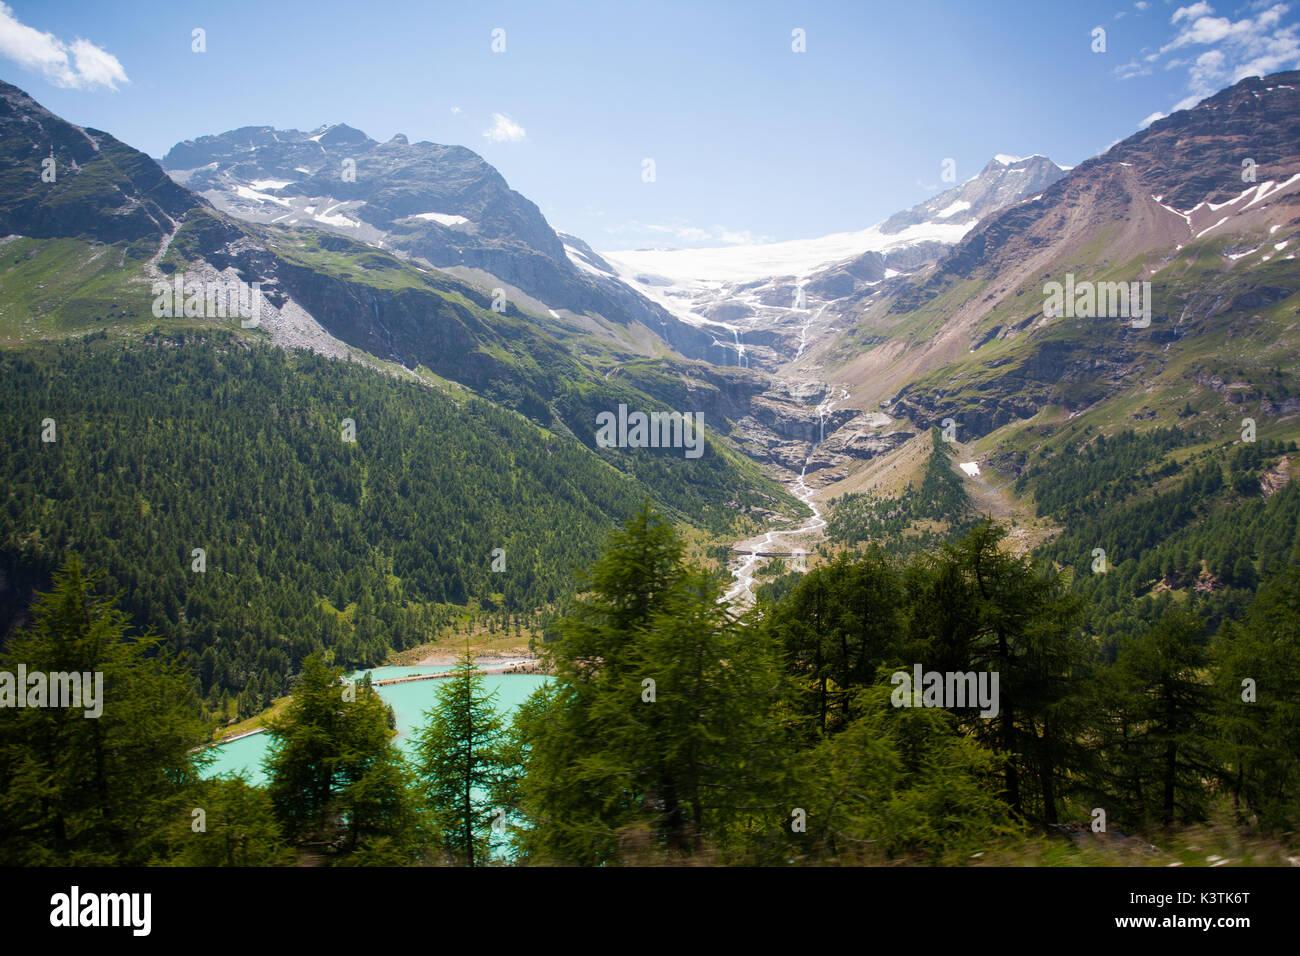 Amazing view from Alp Grum railway station between Pontresina, in the Canton of Graubunden, Switzerland - Stock Image